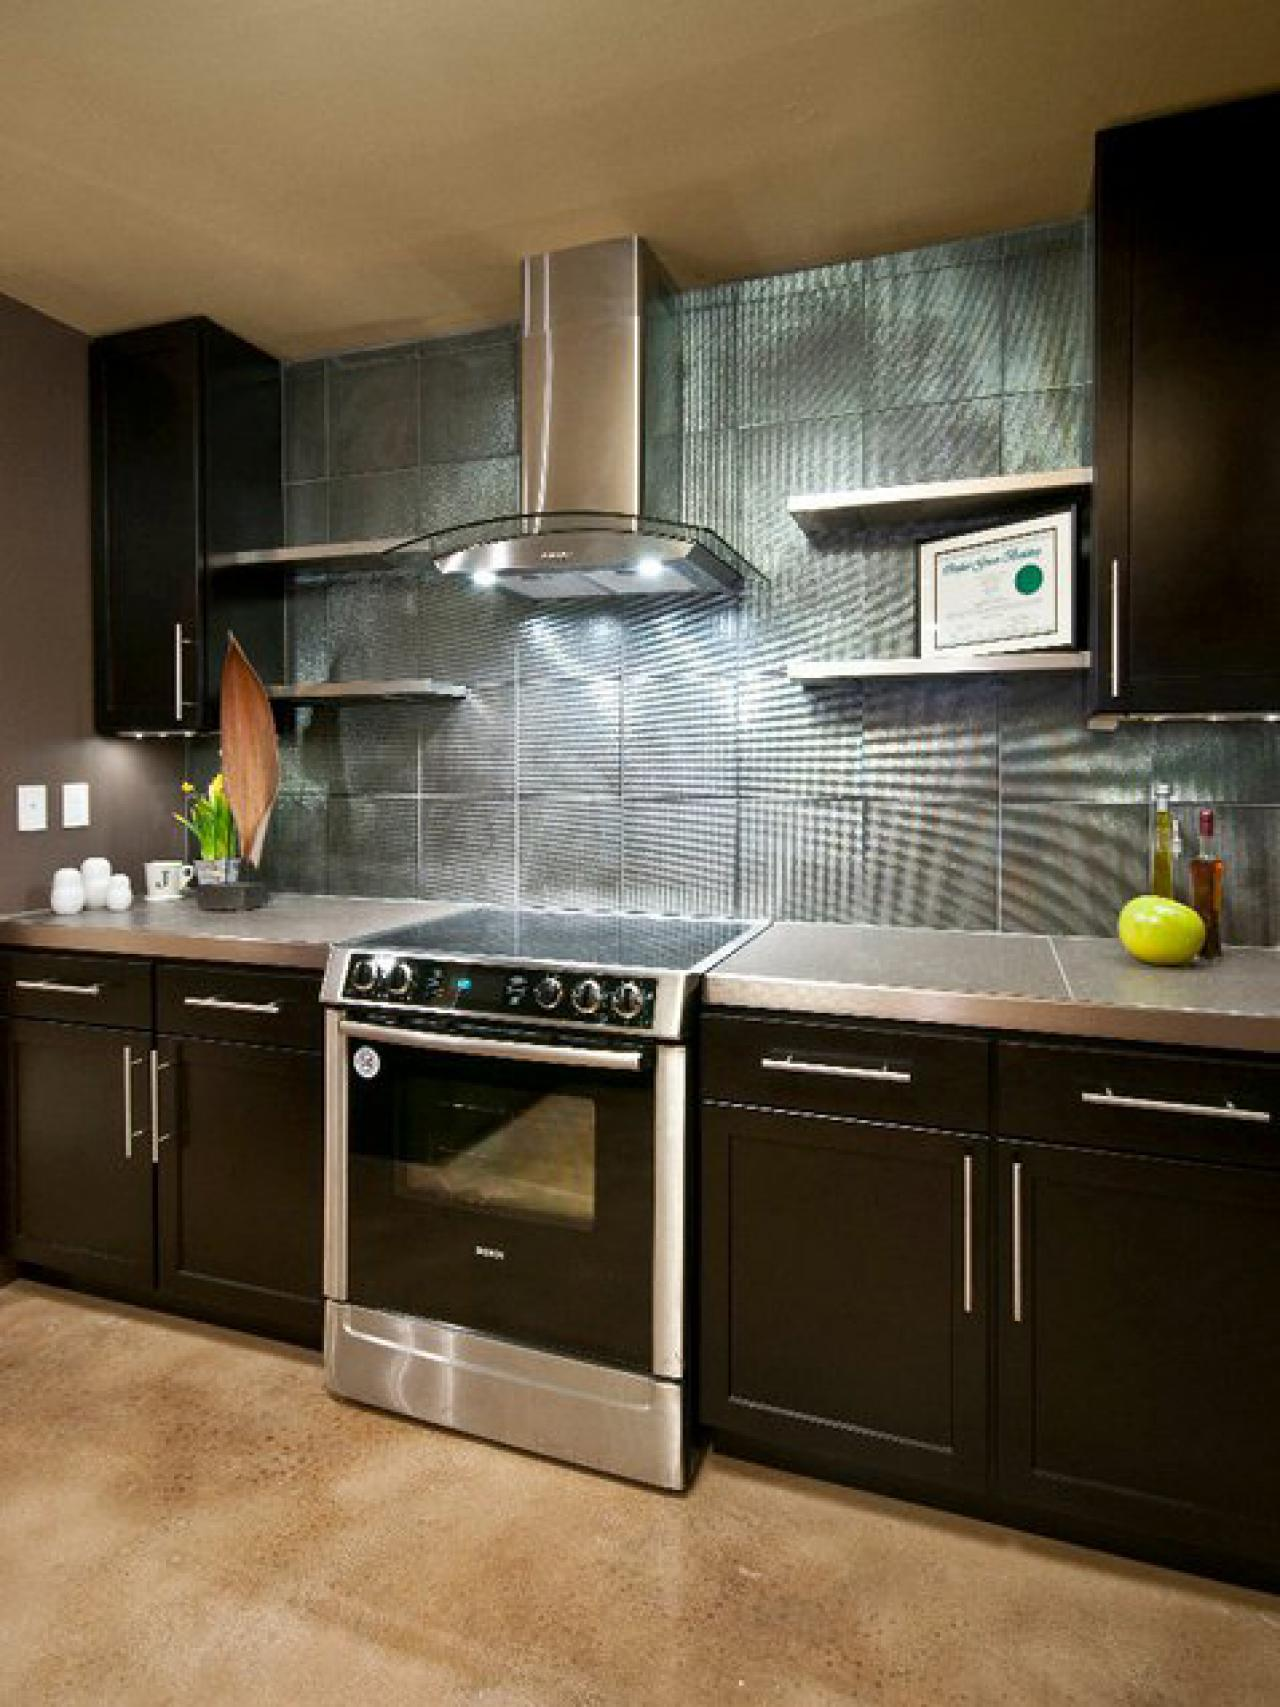 Do it yourself diy kitchen backsplash ideas hgtv pictures hgtv Kitchen ideas backsplash pictures